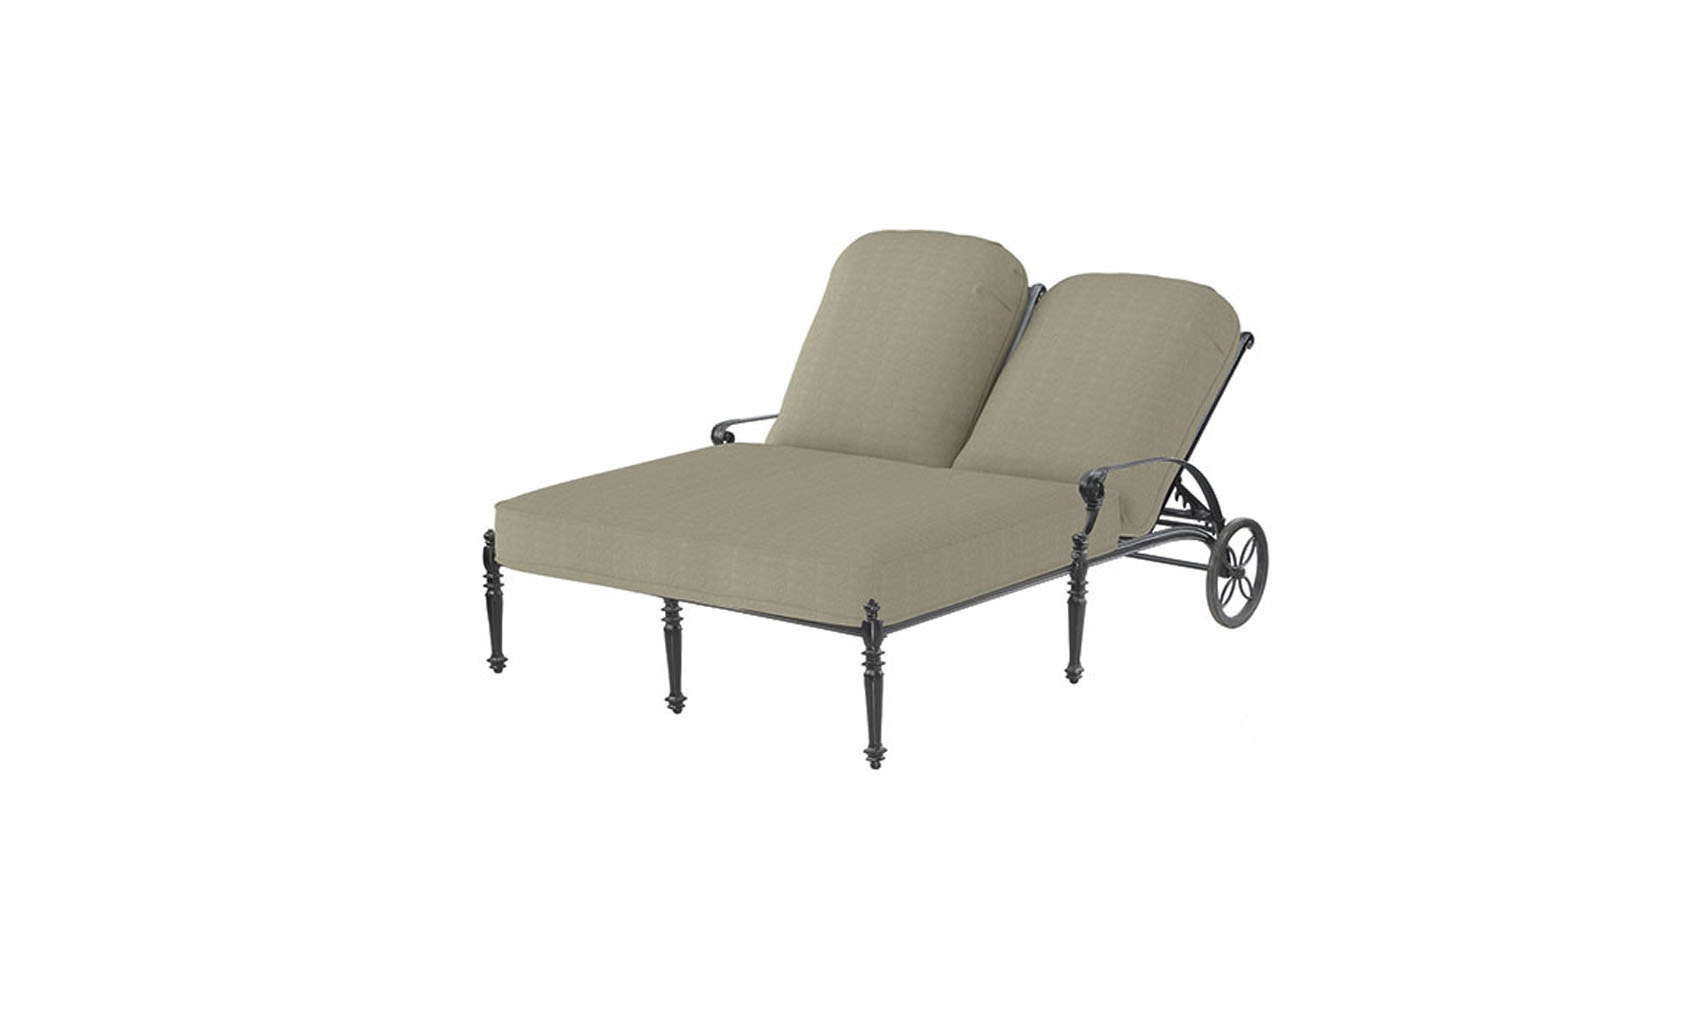 Grand Terrace Cushion Double Chaise Lounge Outdoor